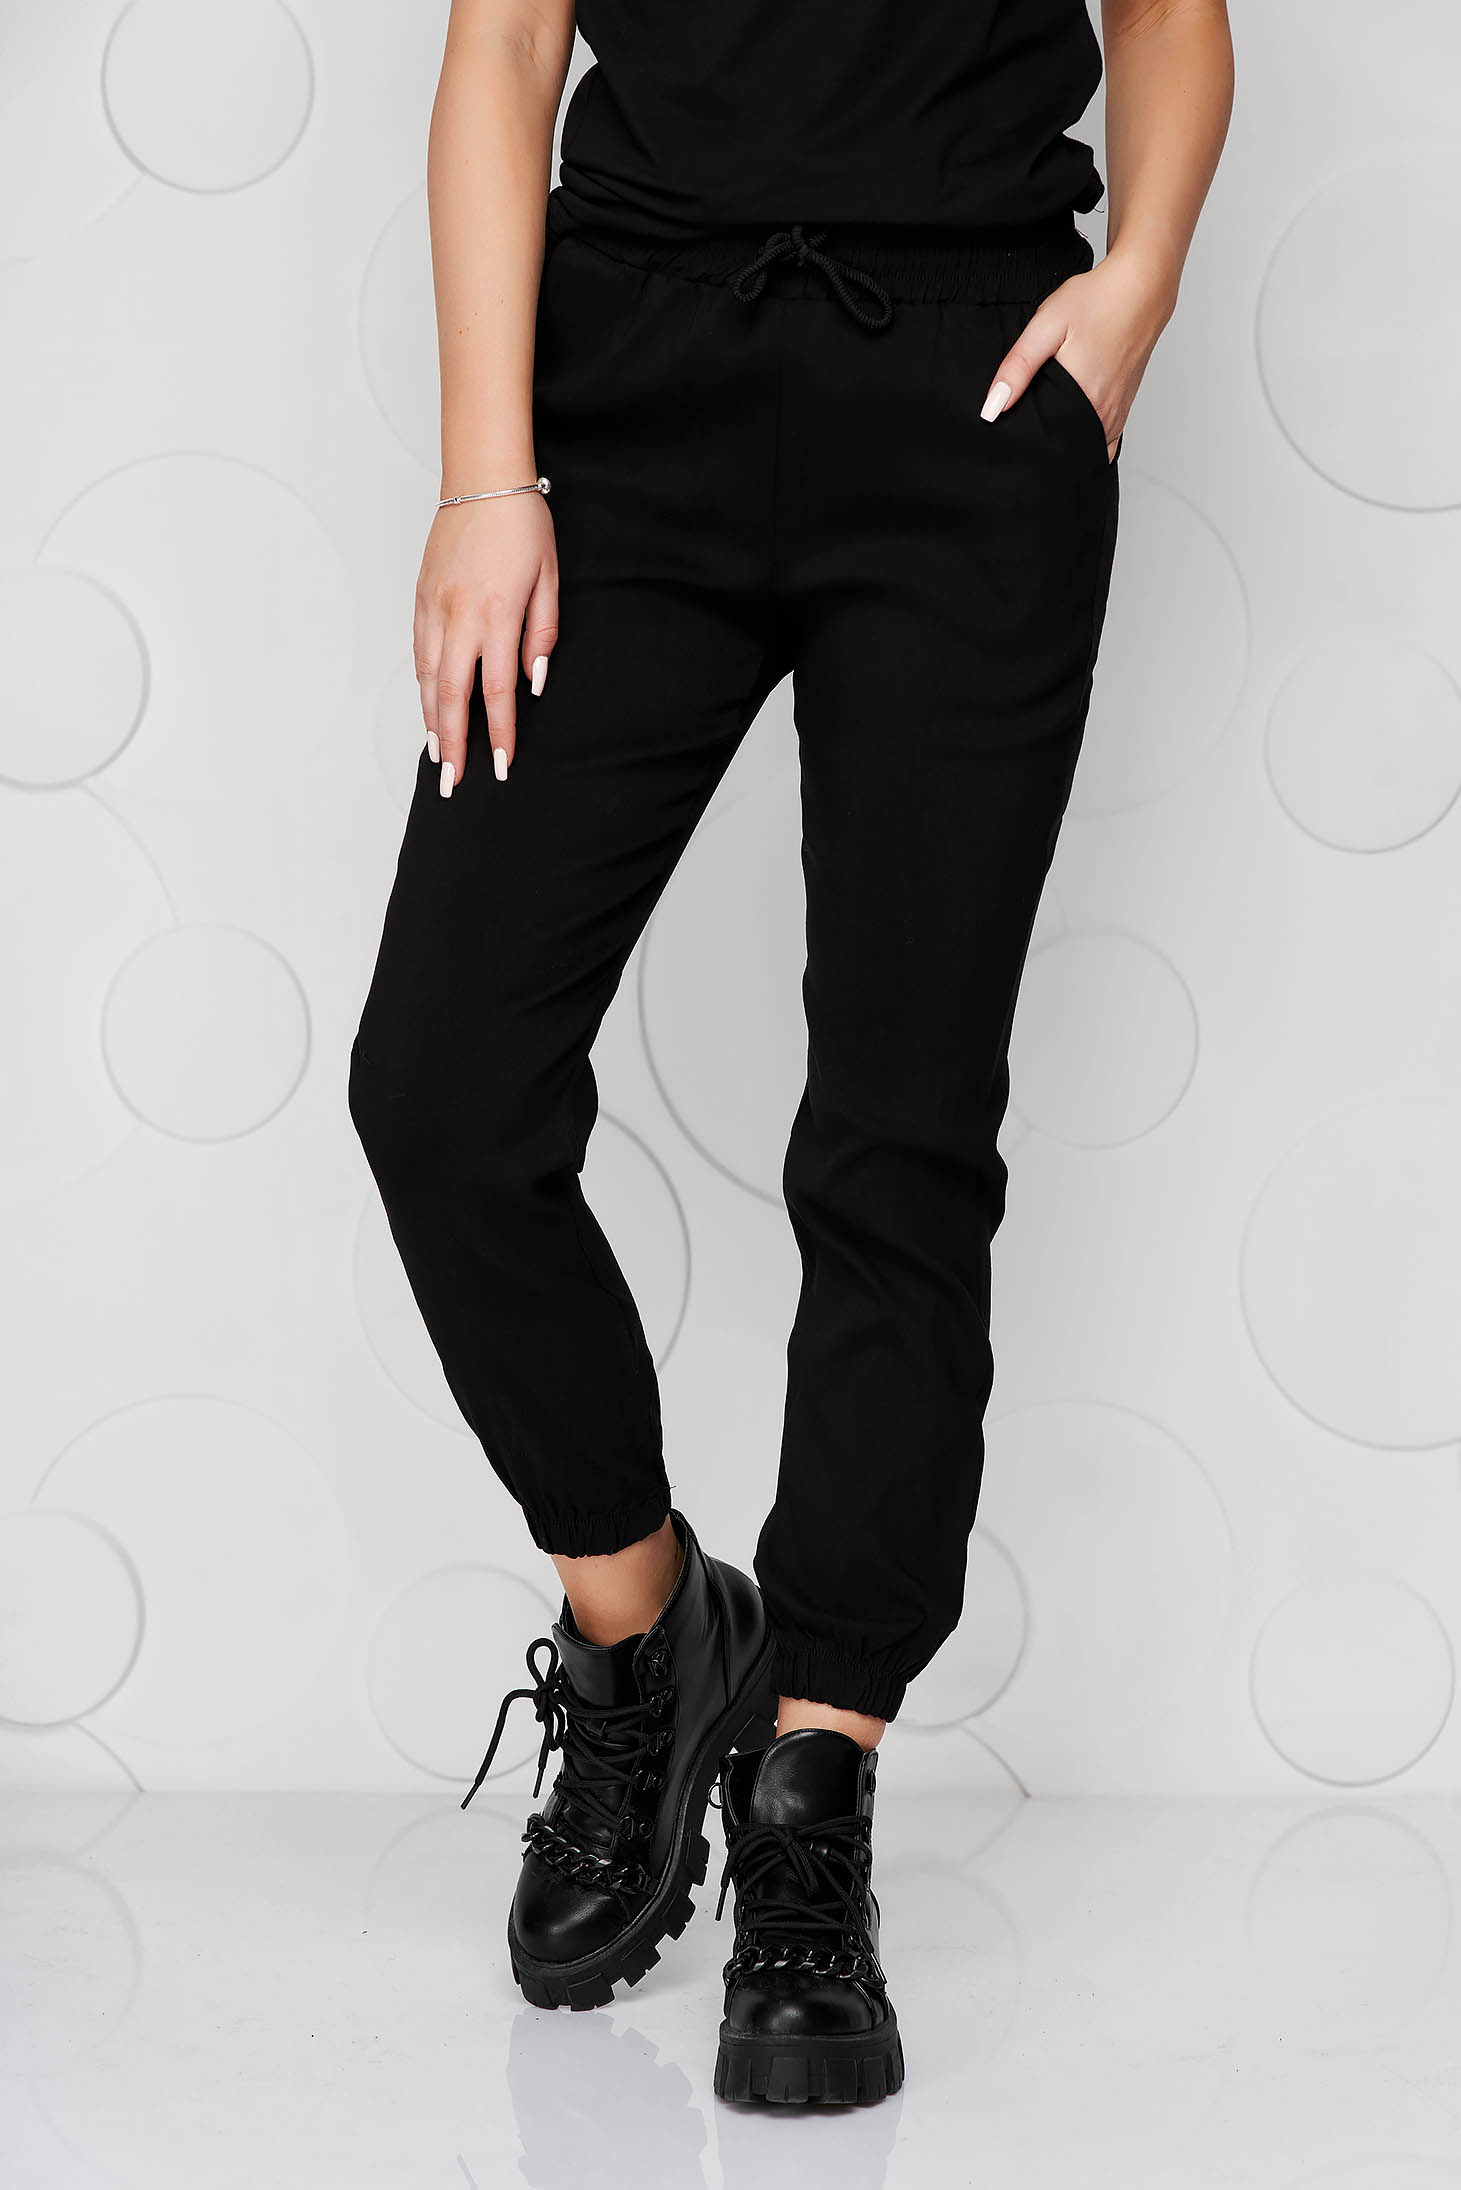 Black trousers with pockets with medium waist thin fabric